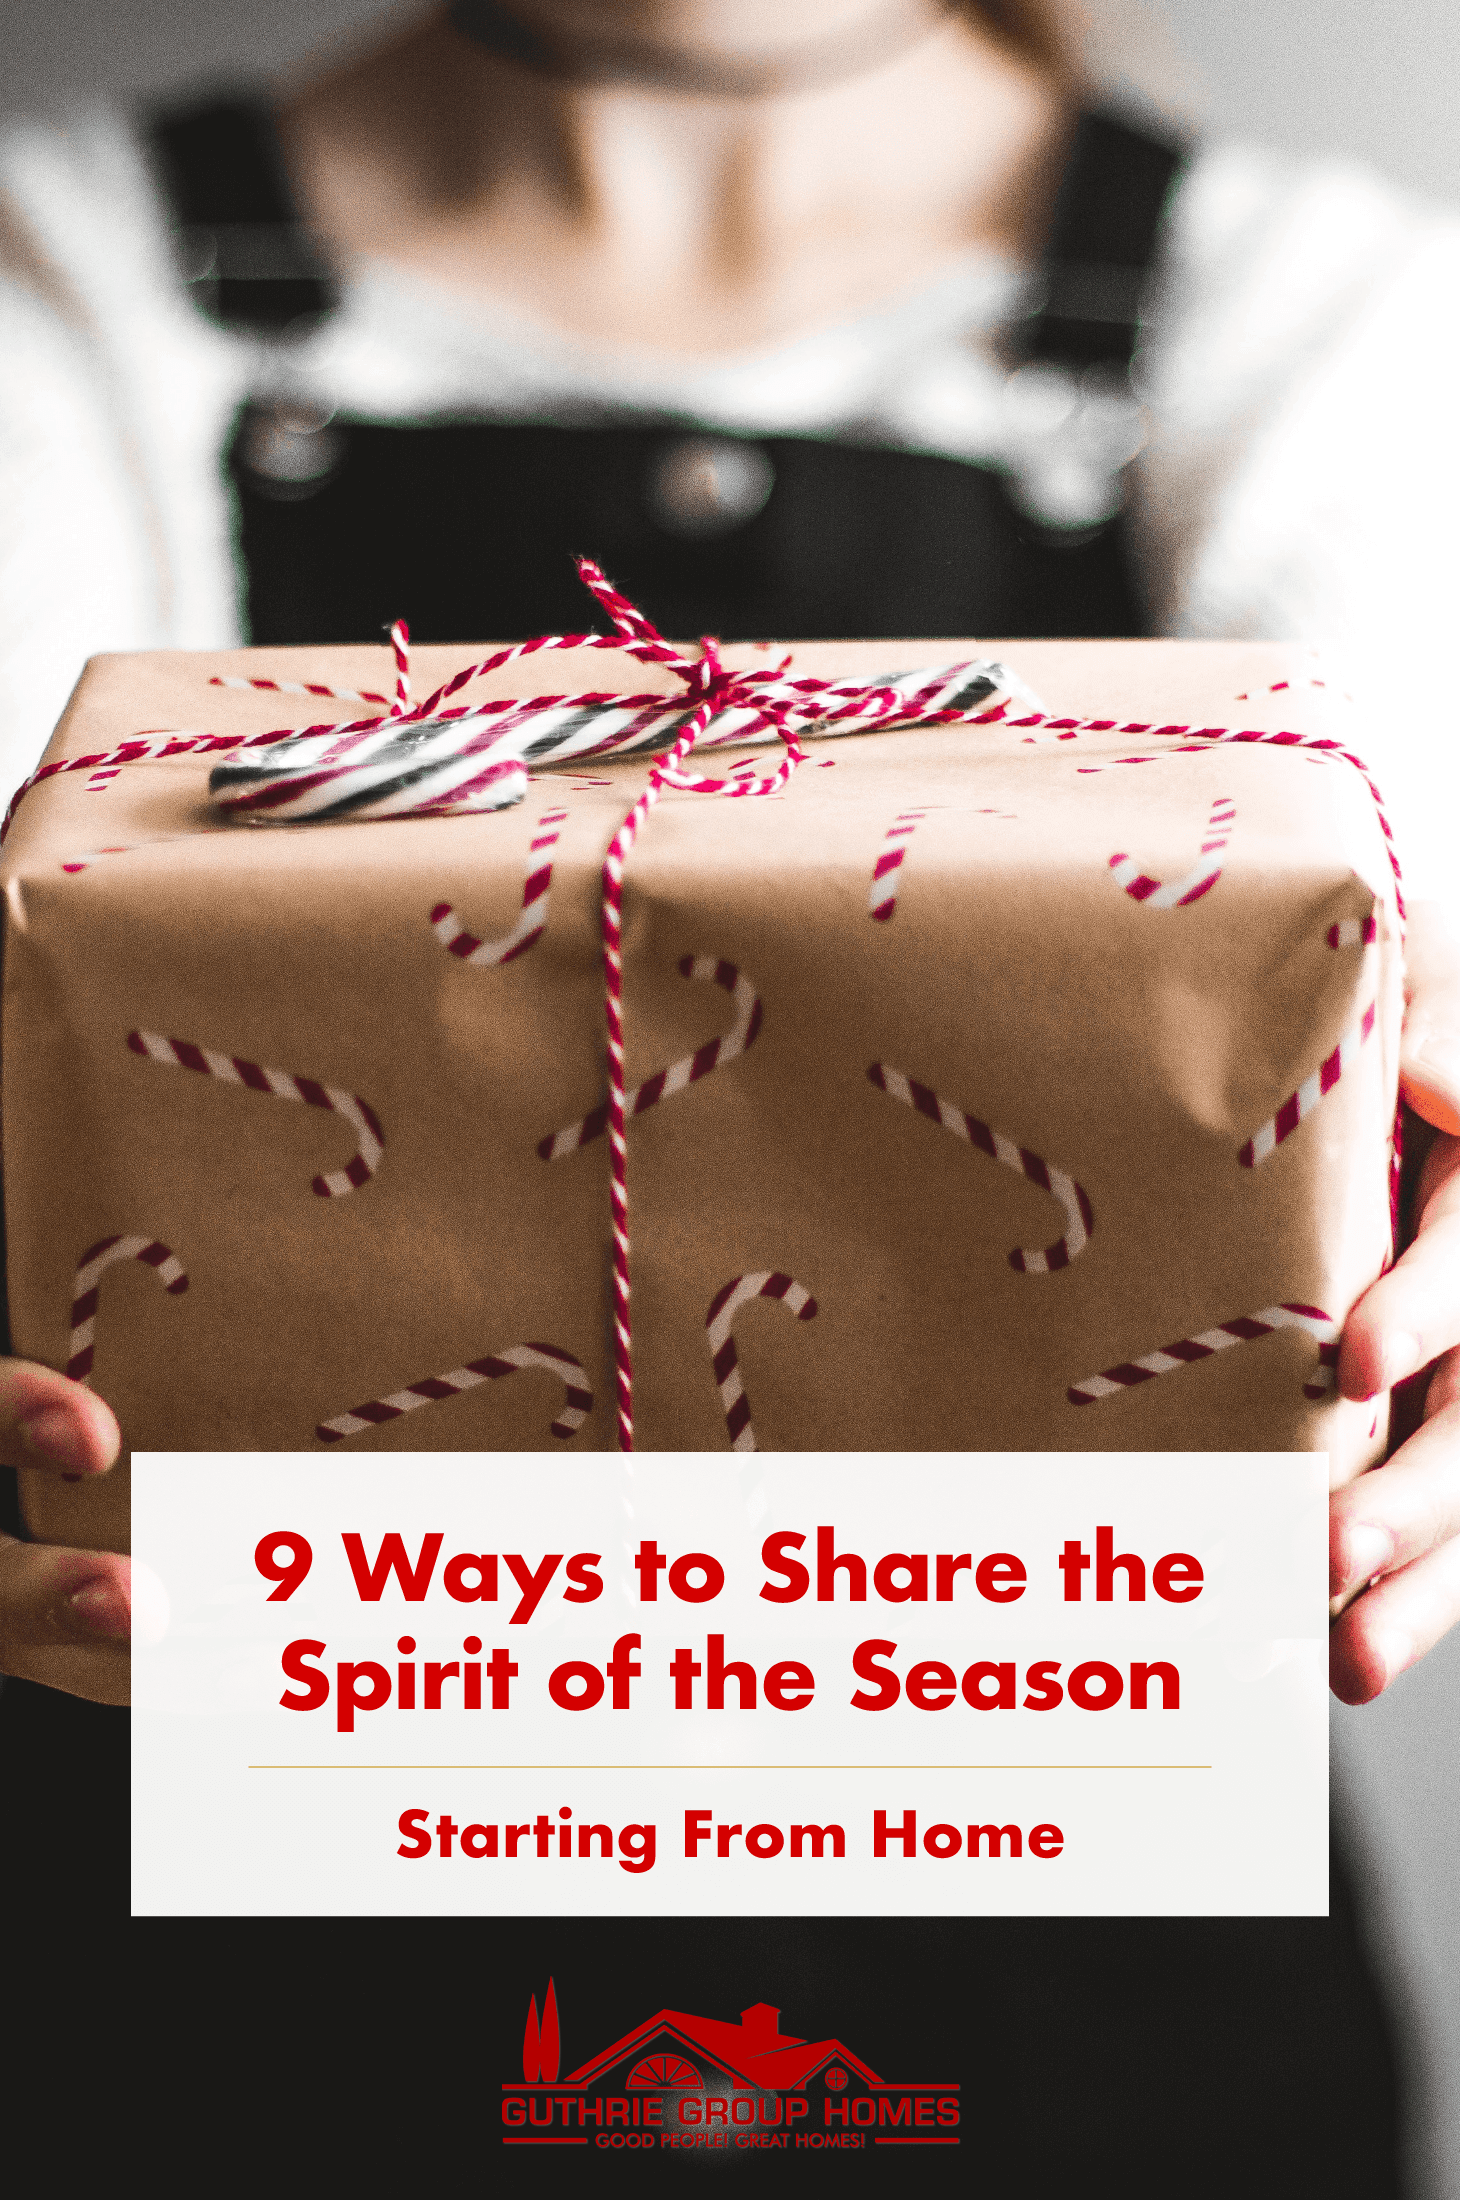 9 Ways to Share the Spirit of the Season ⋆ Guthrie Group Homes, Real EstateHere are 9 ways you can share the spirit of the holiday season. ❤1. Host a Holiday Party2. Help a Neighbor in Need3. Treat Your Mail and Package Carriers4. Overtip5. Thank Those Who Don't Get a Holiday6. Fill Stockings for the Homeless7. Offer Warmth on a Cold Day8. Pay Off a Stranger's Layaway9. Donate Toys to a TotRead the article for more ways to brighten someone's holiday. 🎅🤶🎁